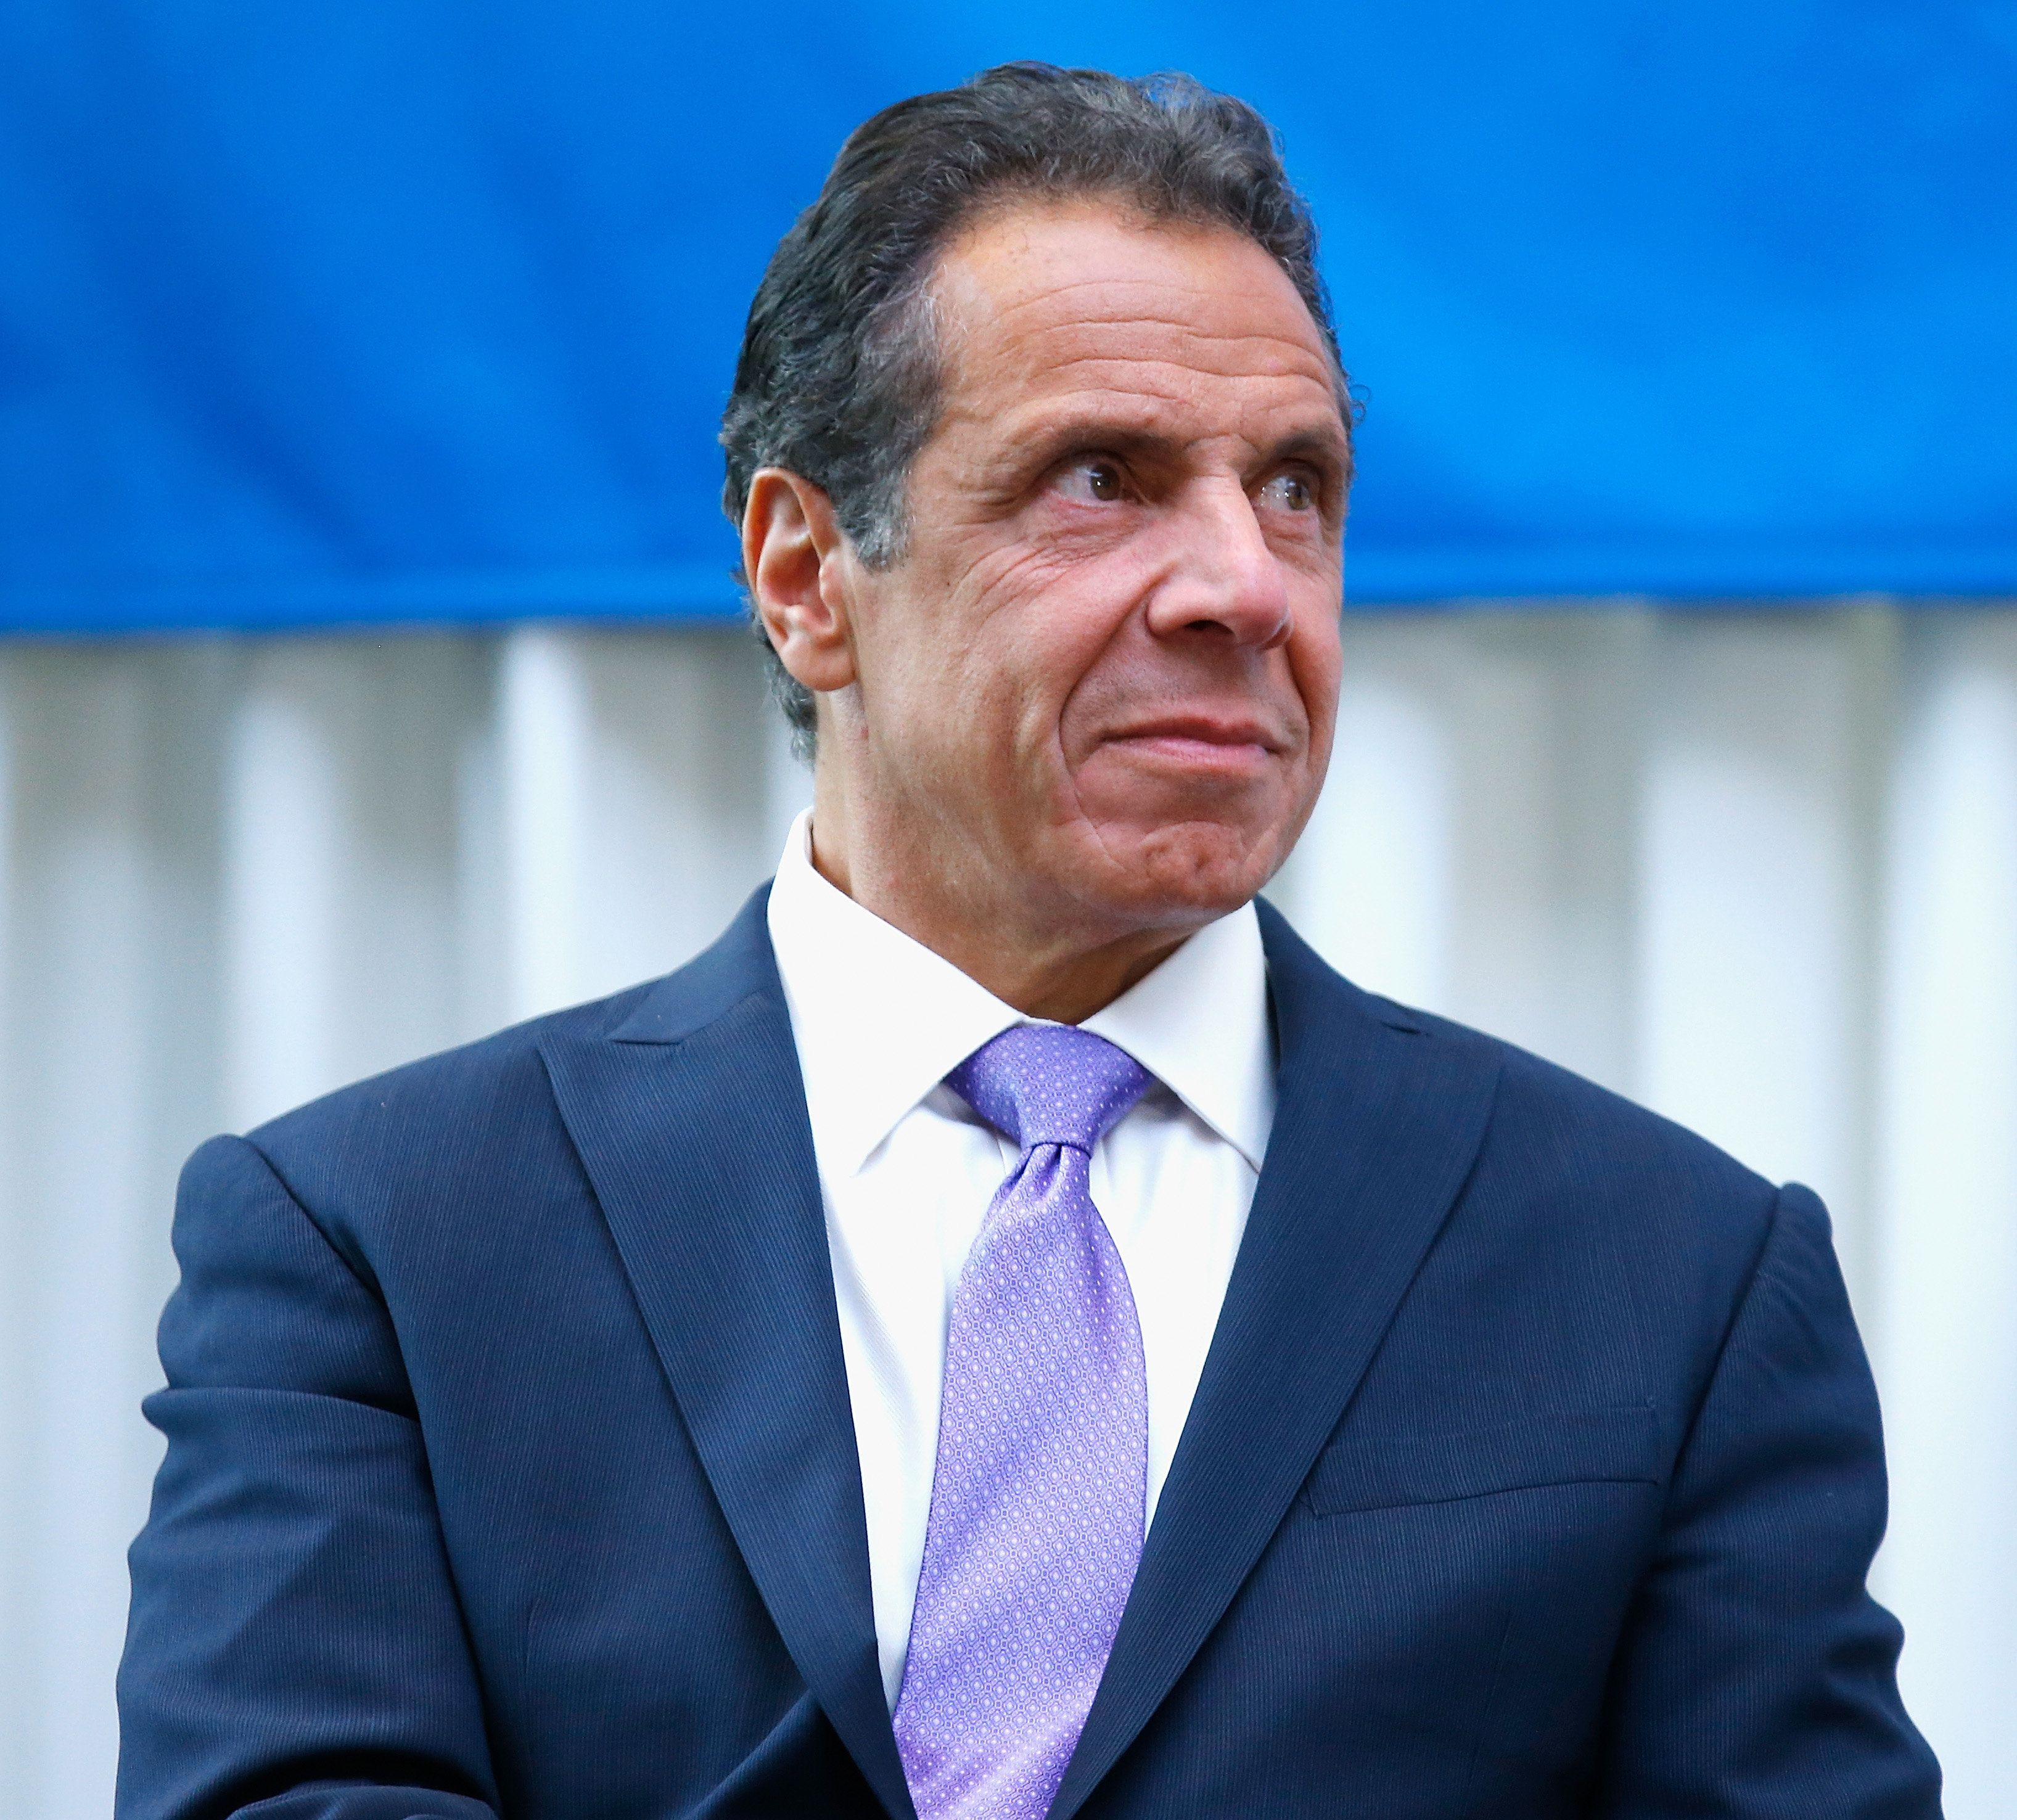 """Gov. Andrew Cuomo called the license denial """"an unconscionable act of discrimination that goes against our values as New York"""